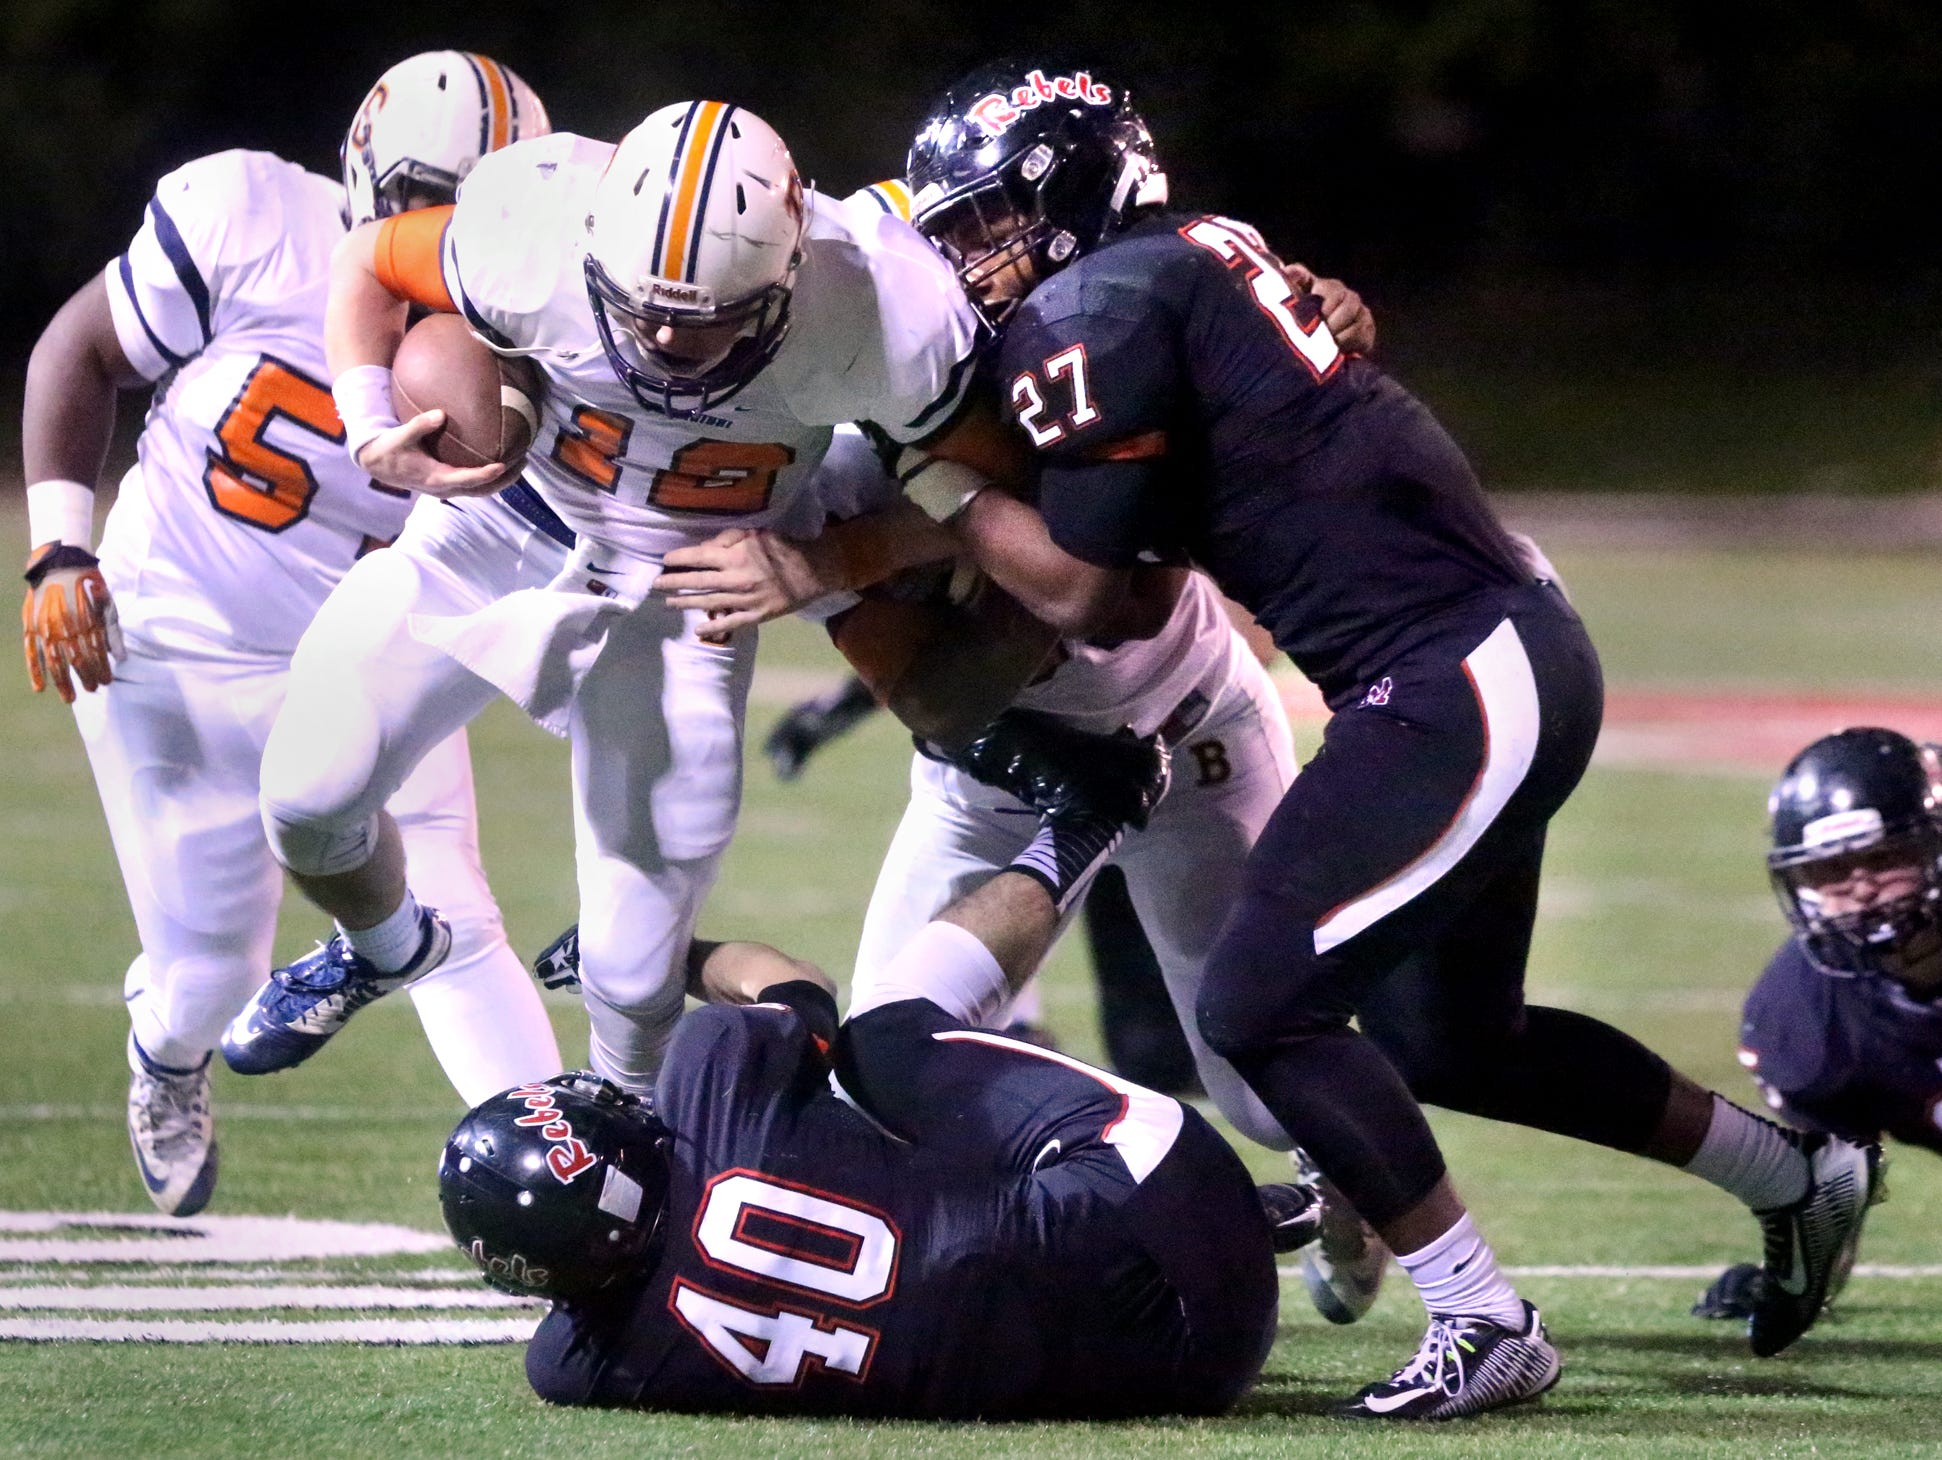 Maryville's T.D. Blackmon moves in to stop Blackman's quarterback Miller Armstrong (12) as Arstrong runs the ball during the quarterfinal game, at Maryville, on Friday, Nov. 20, 2015.